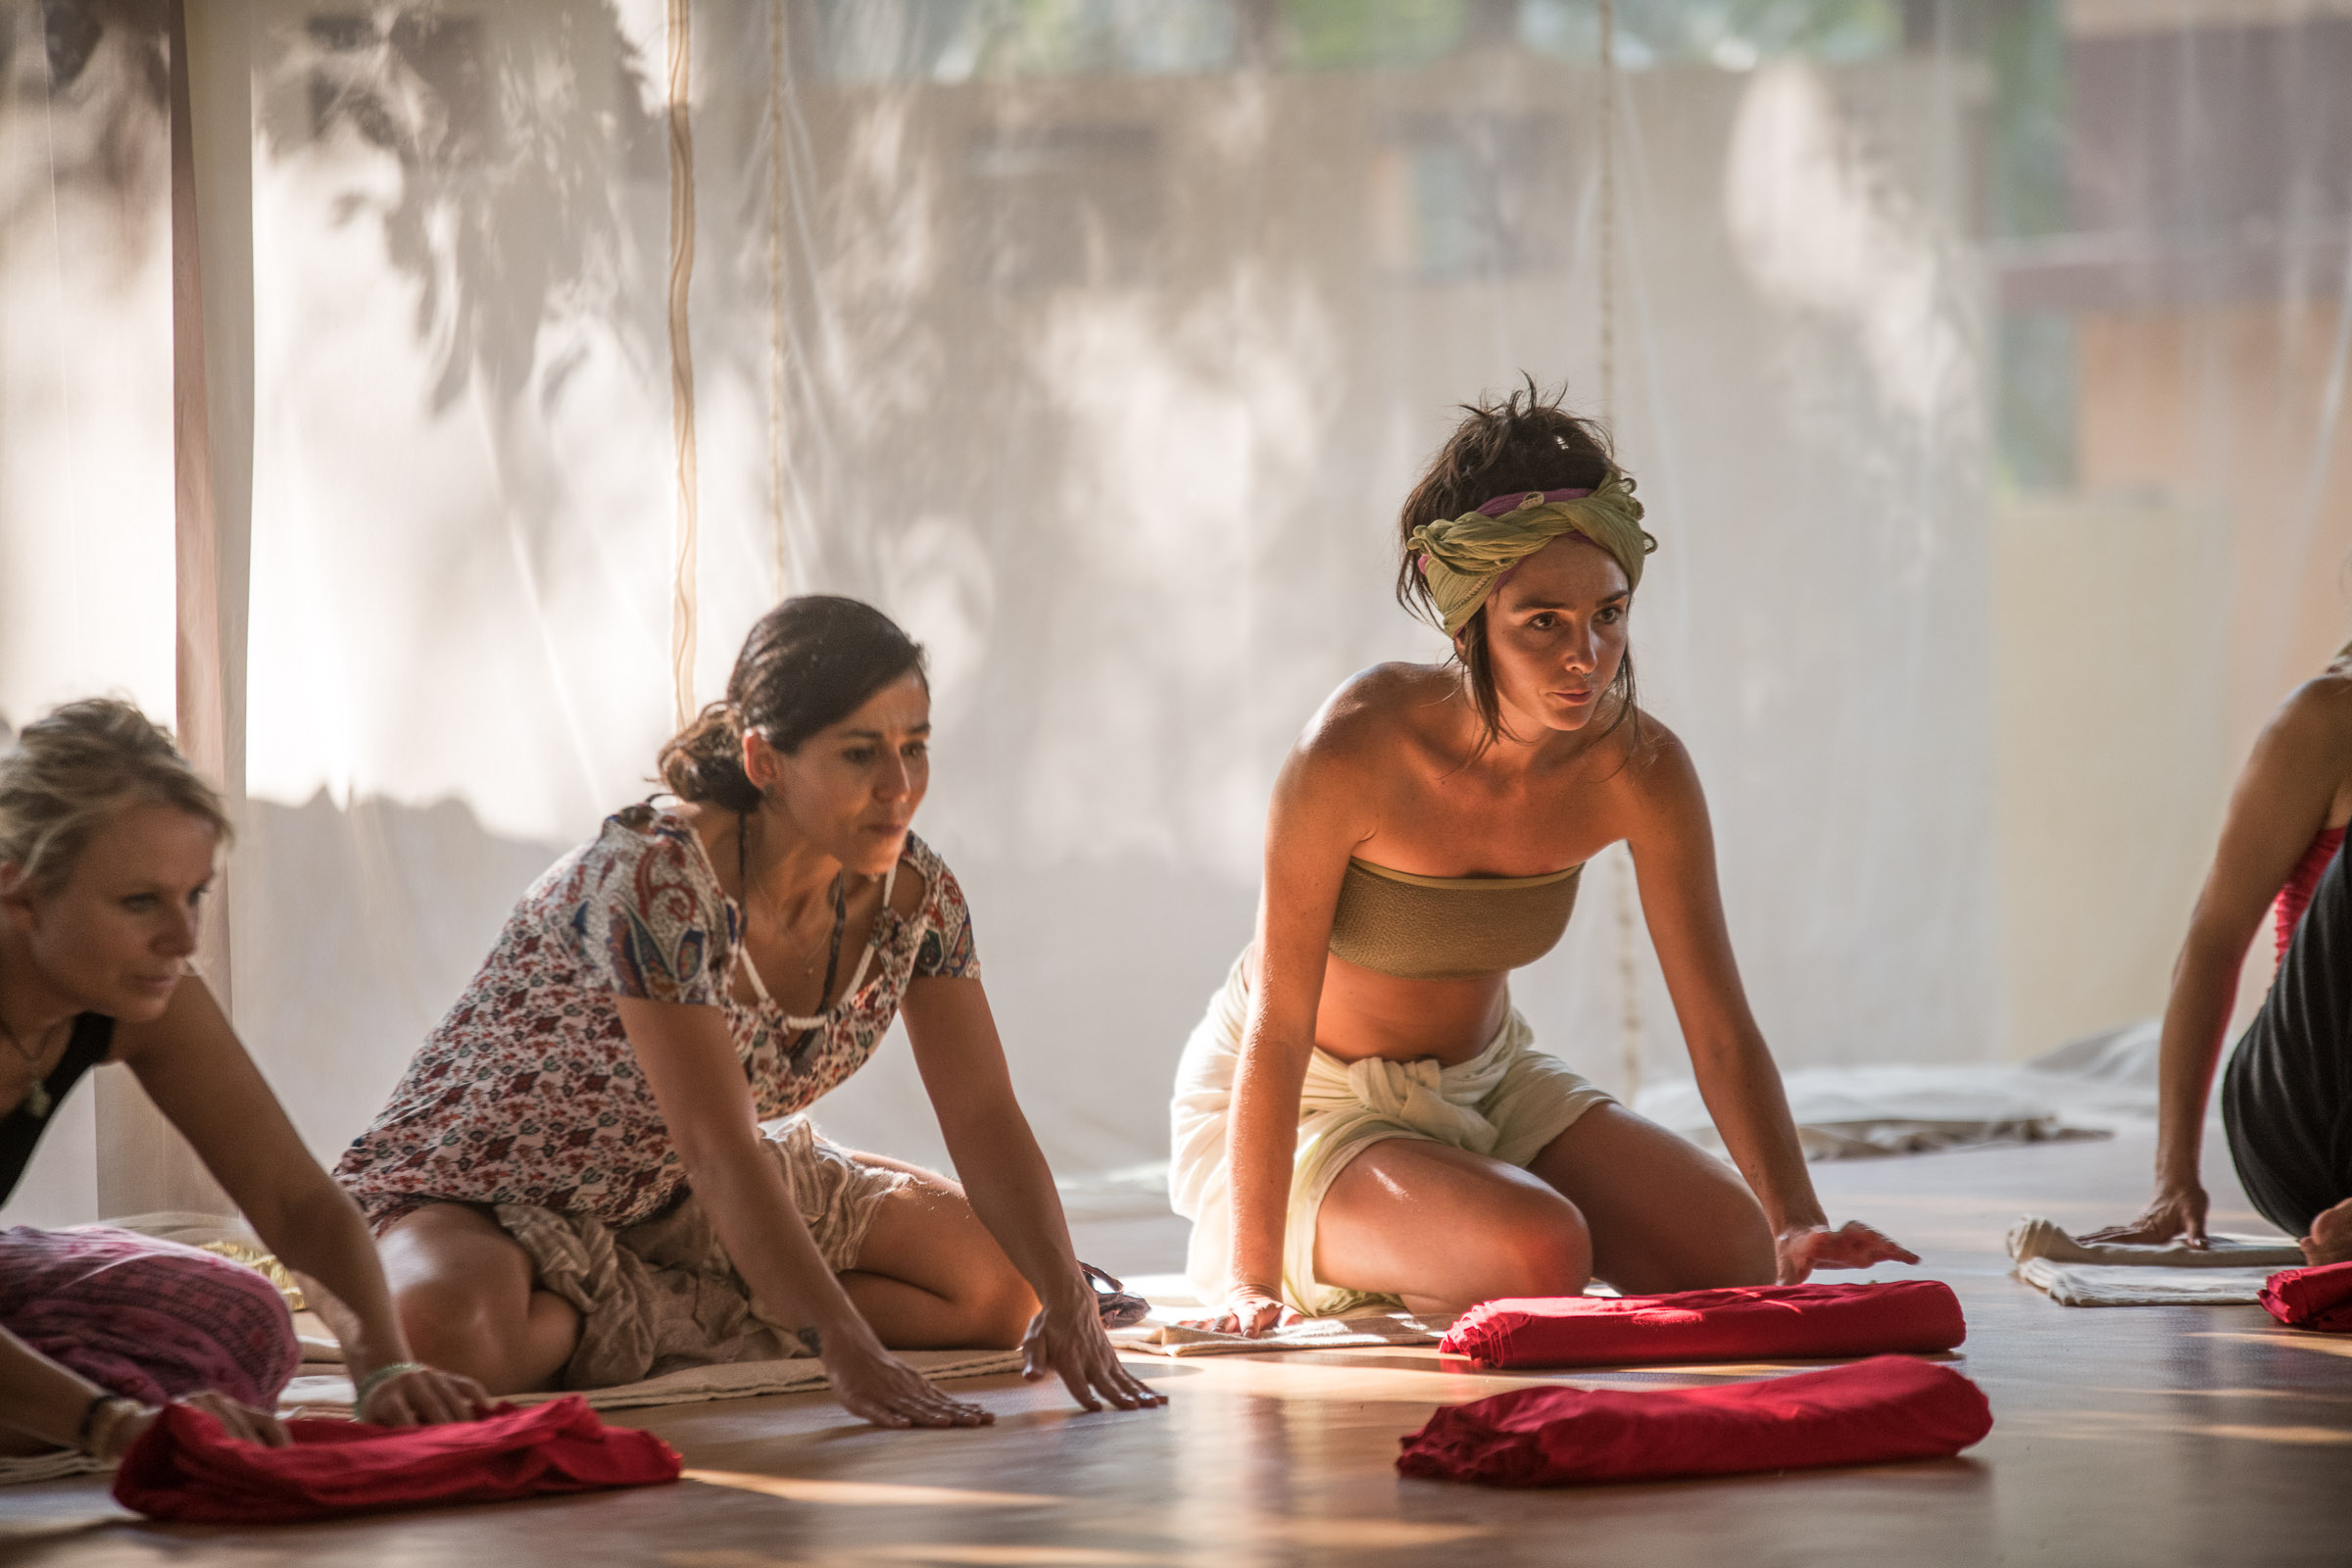 Earth body practice during women workshop and retreat - Magdalena Smolarska Photography